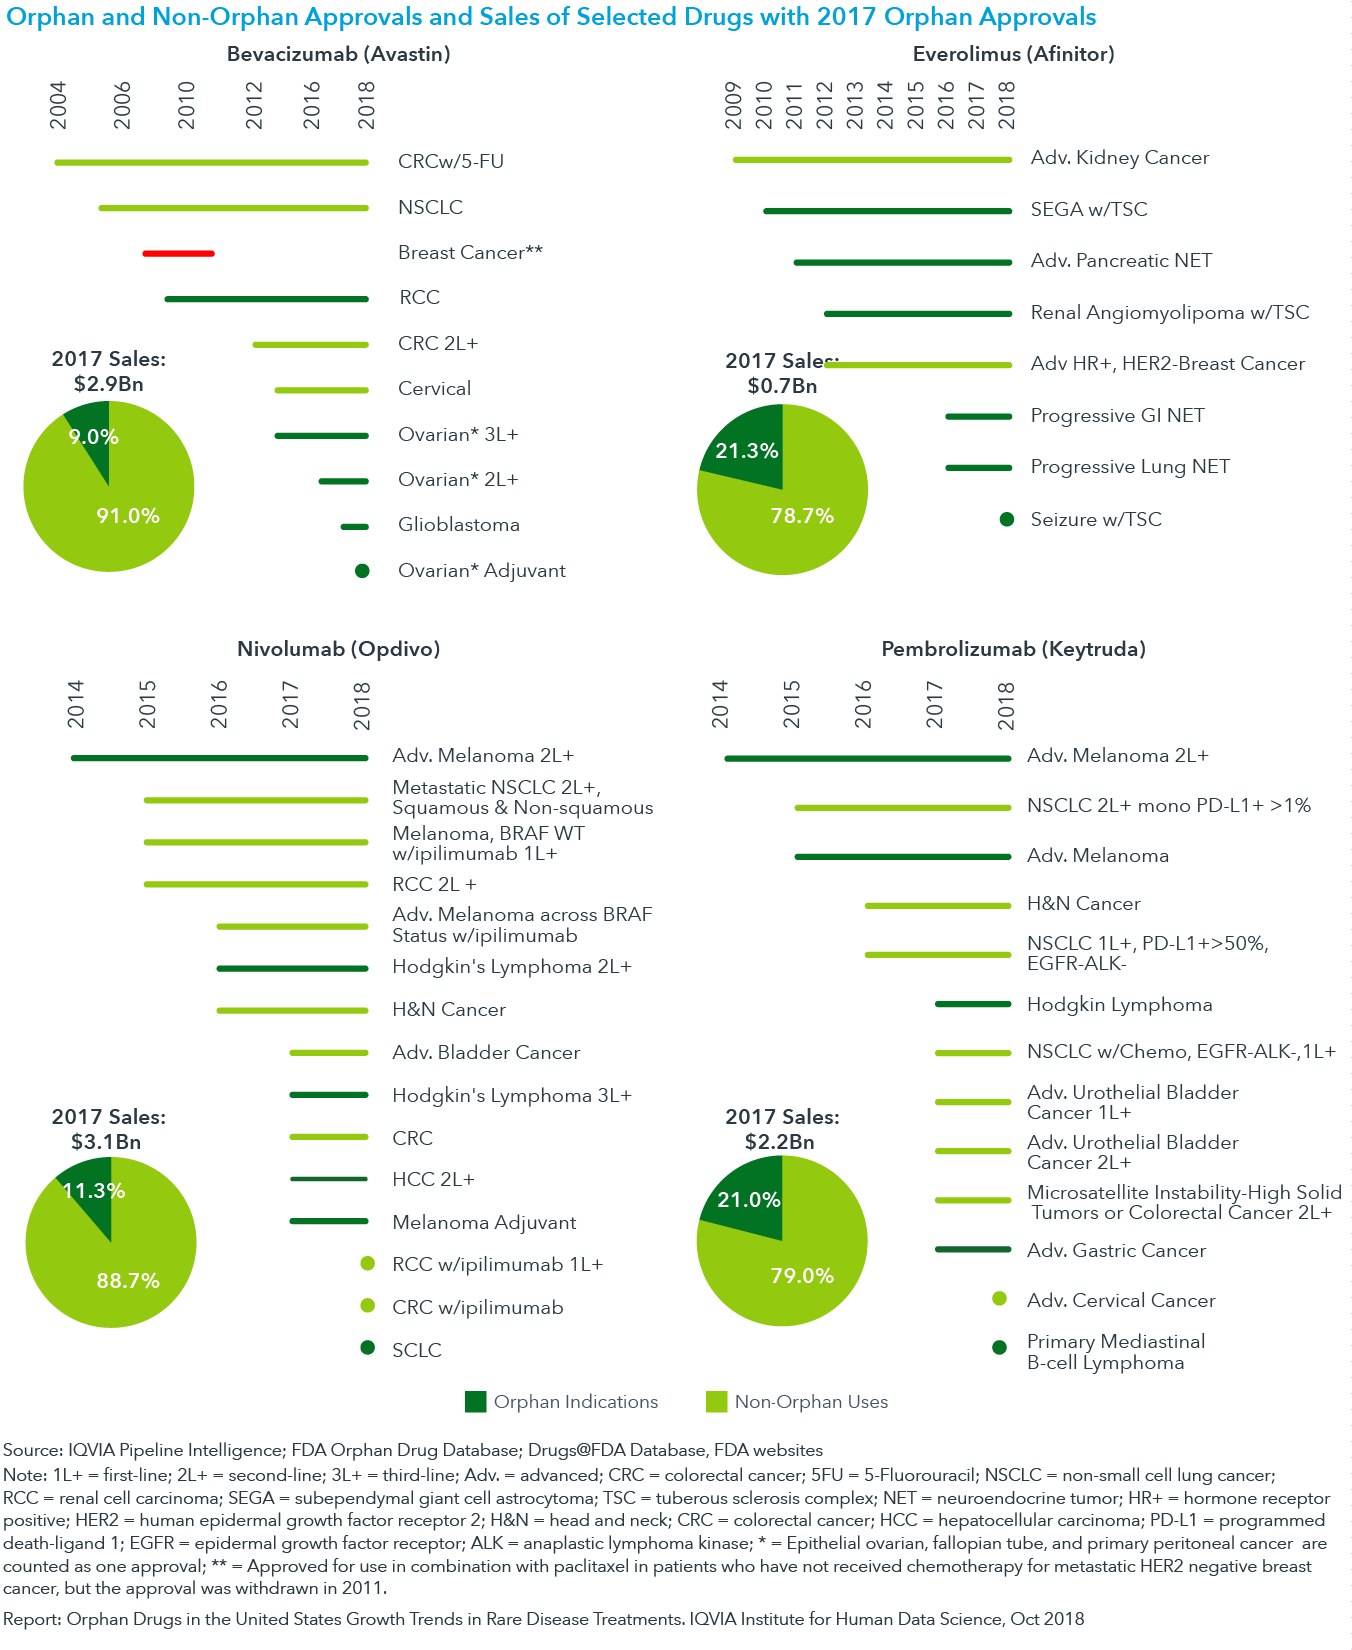 Chart 11: Orphan and Non-Orphan Approvals and Sales of Selected Drugs with 2017 Orphan Approvals